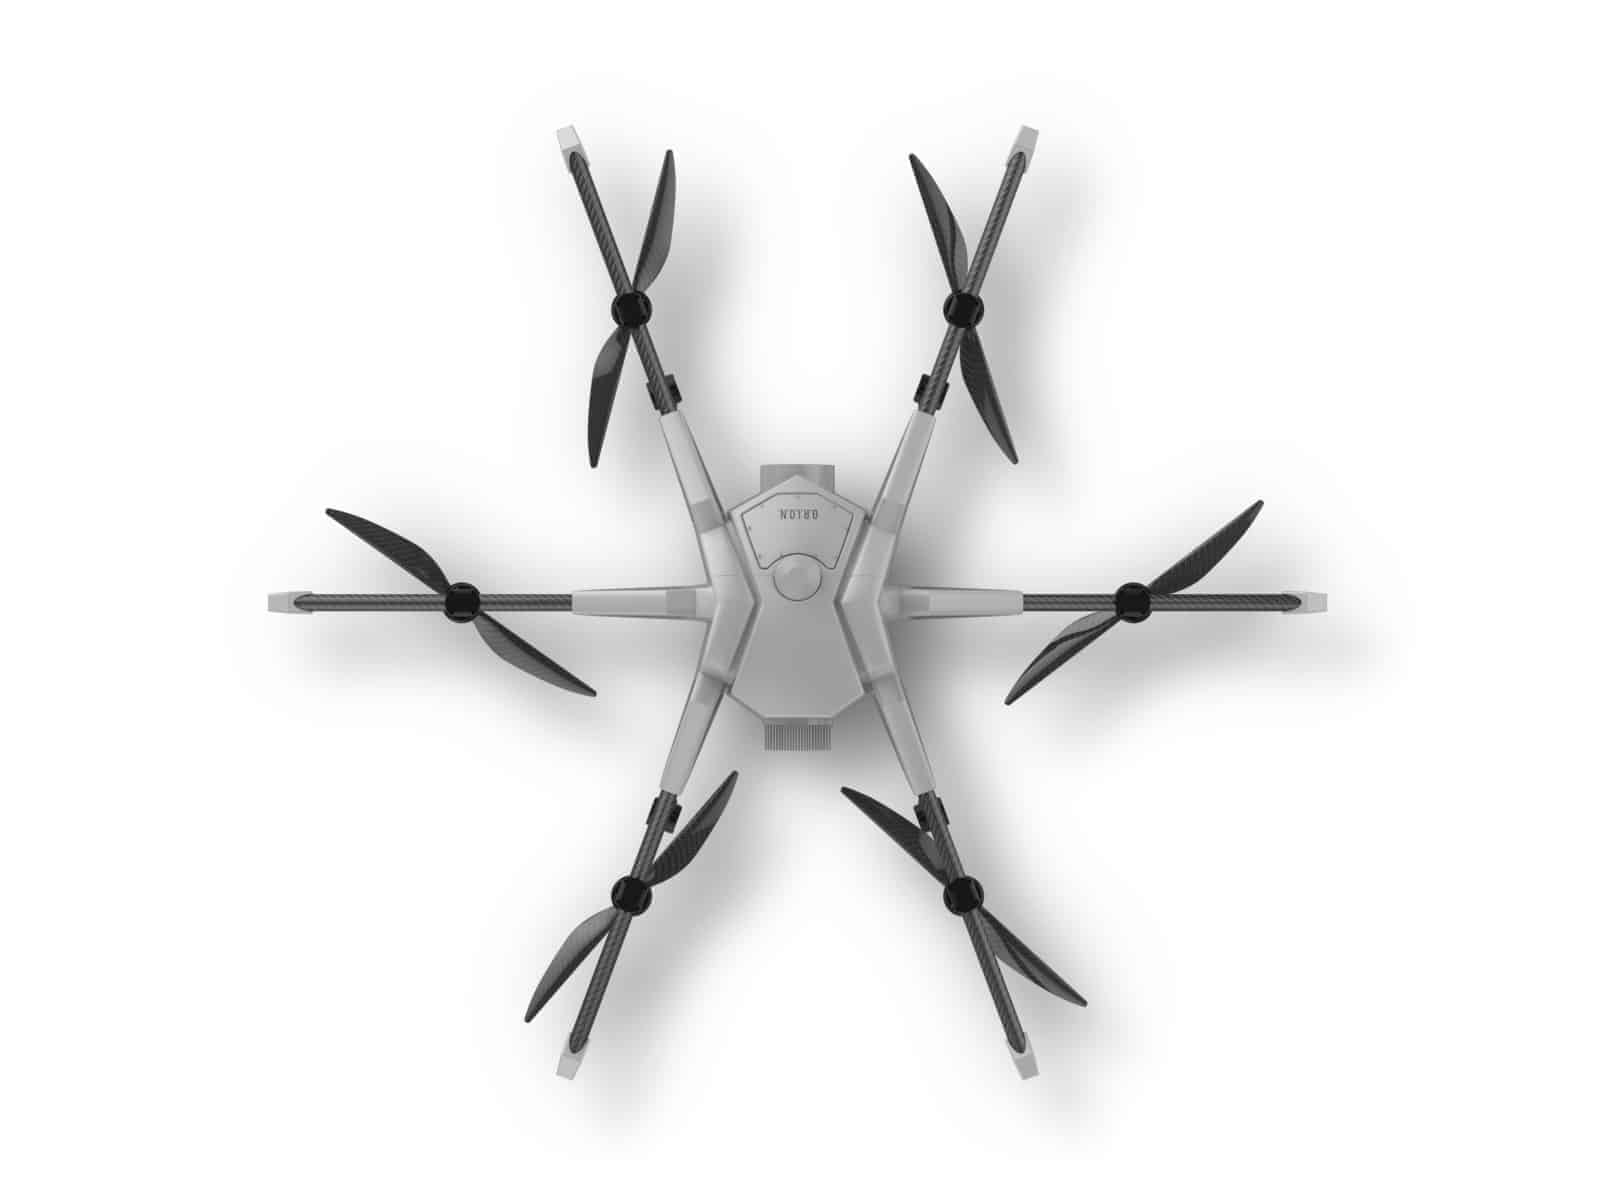 Orion UAV Tethered Drone From Above